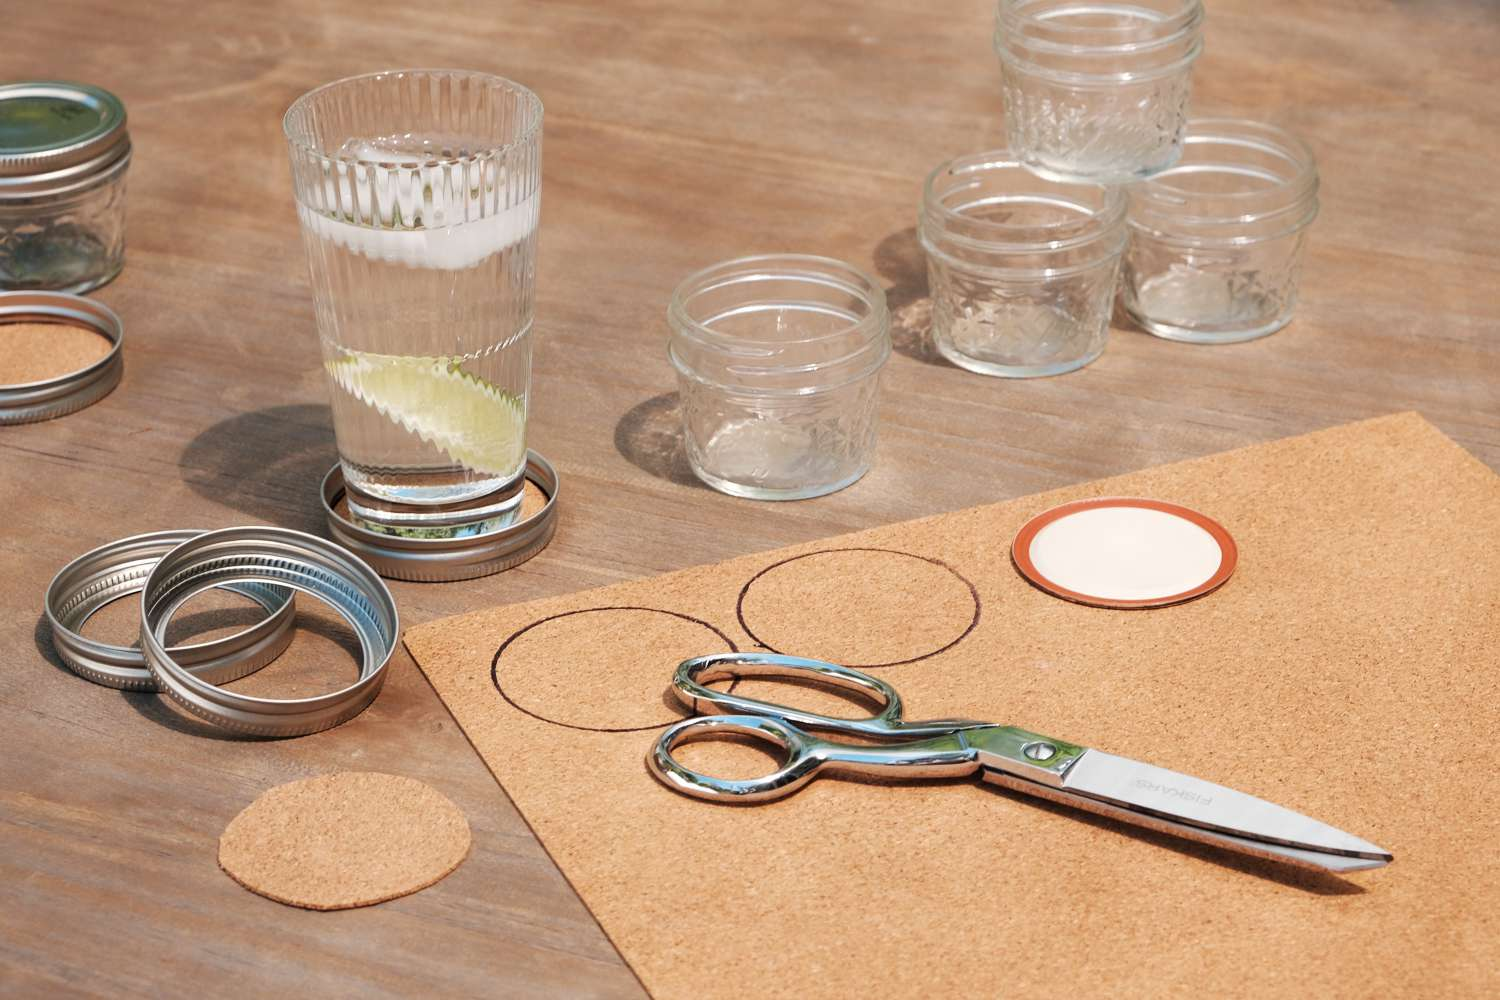 scissors and cork material to make DIY coasters with old canning lids